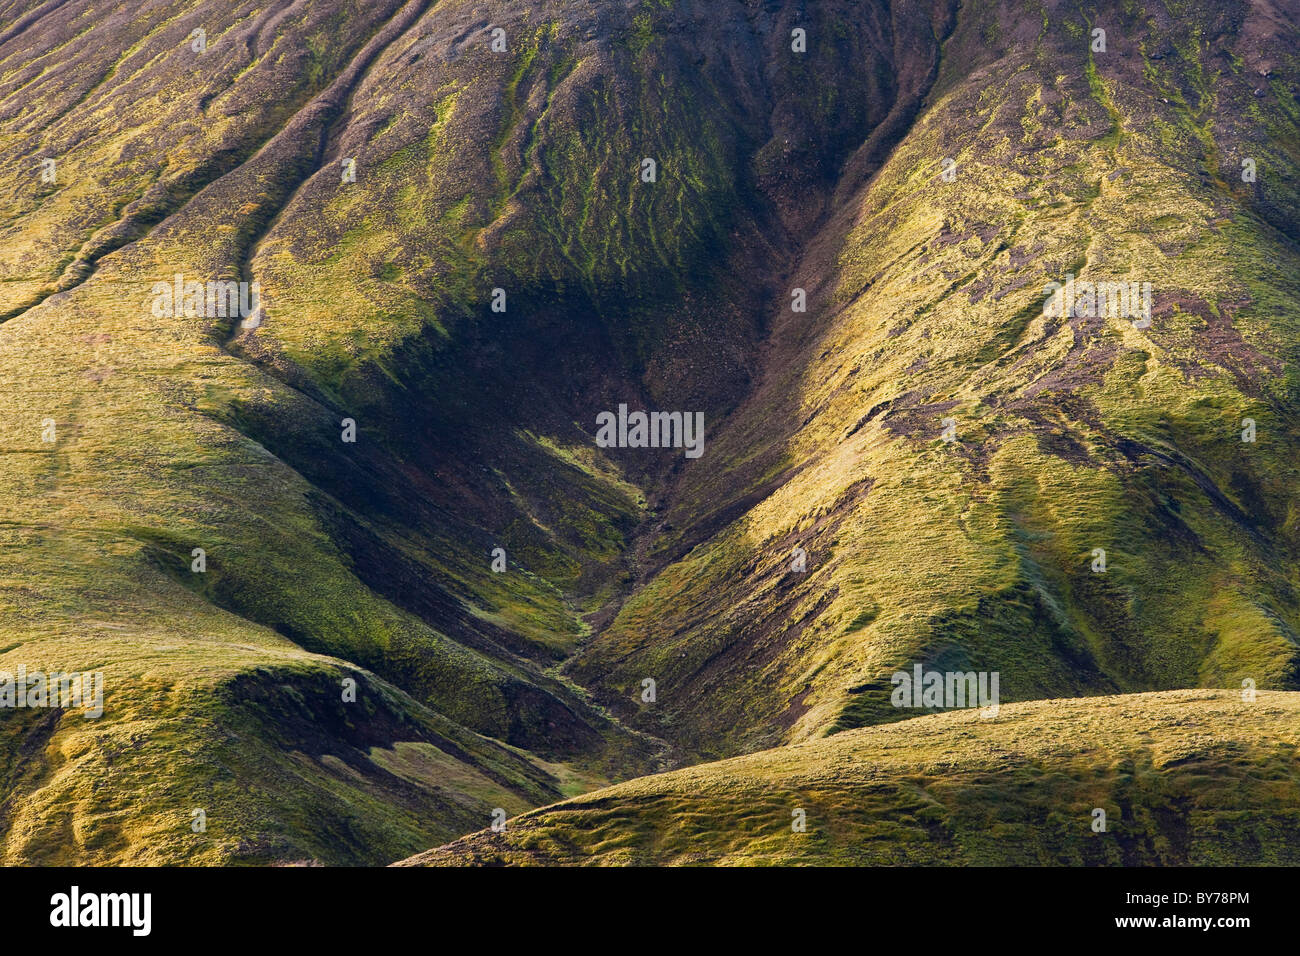 Moss covered mountains, Landmannalaugar, Southern Highlands, Iceland - Stock Image